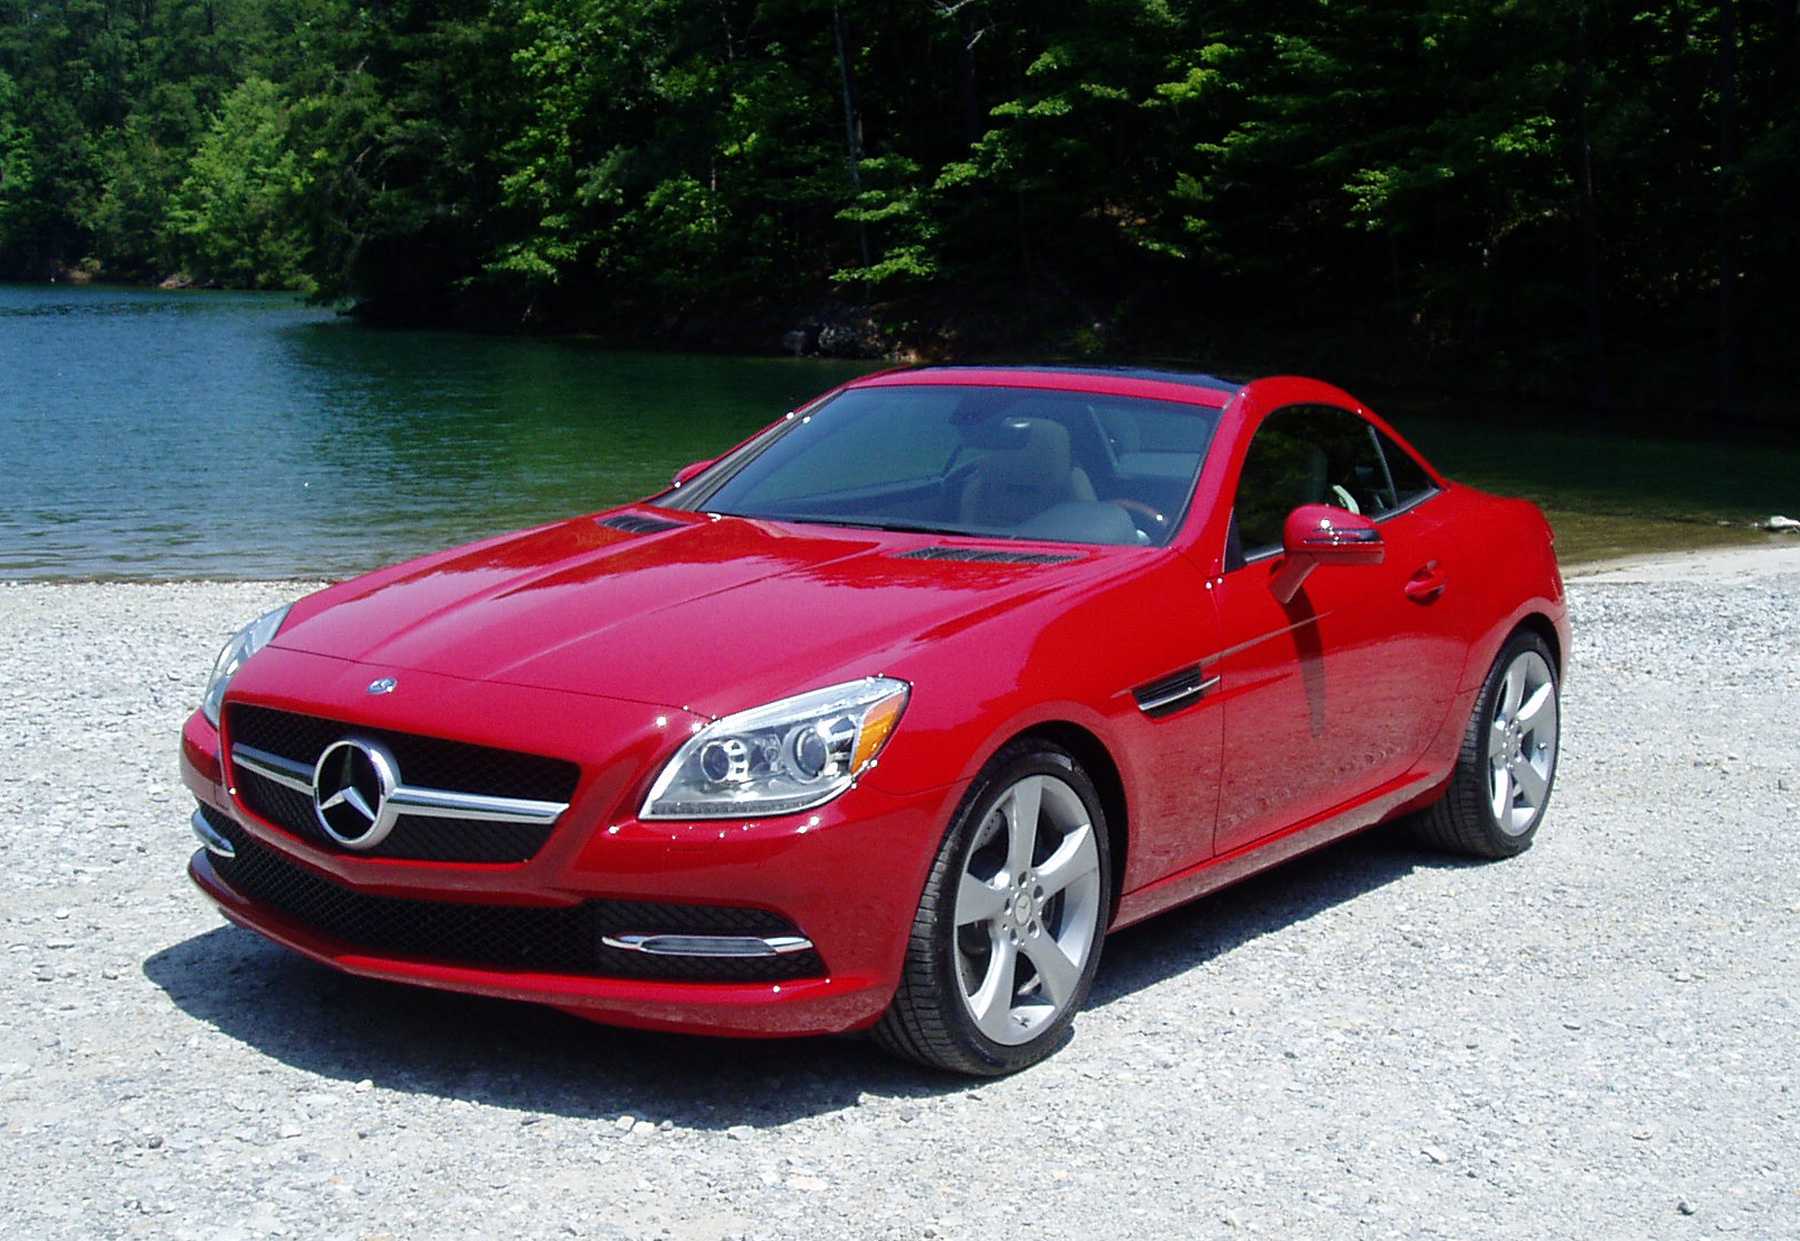 2012 mercedes benz slk350 roadster our auto expert for 2012 mercedes benz slk350